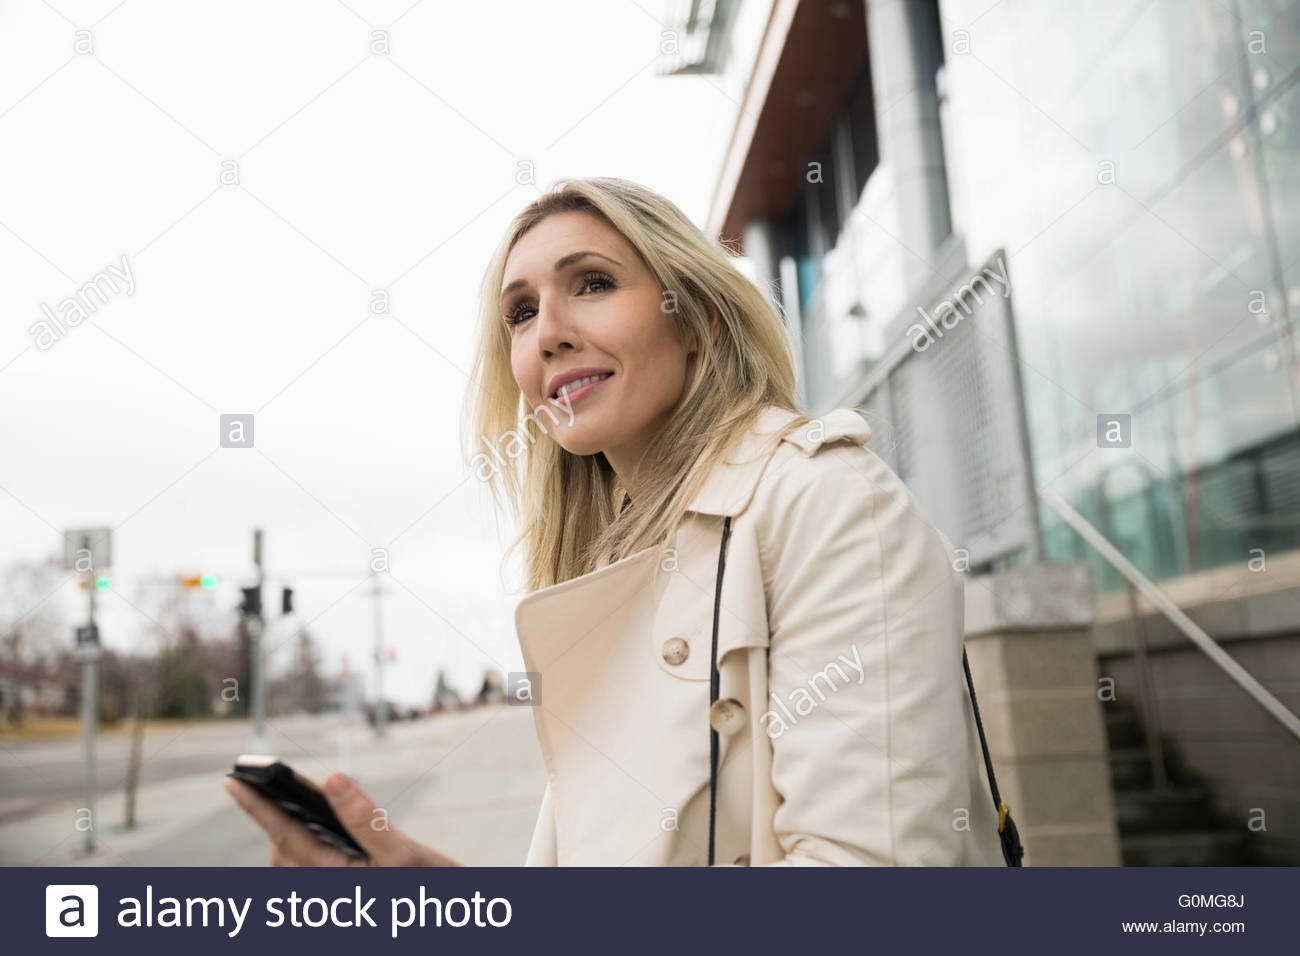 Businesswoman with cell phone en attente de taxi Photo Stock